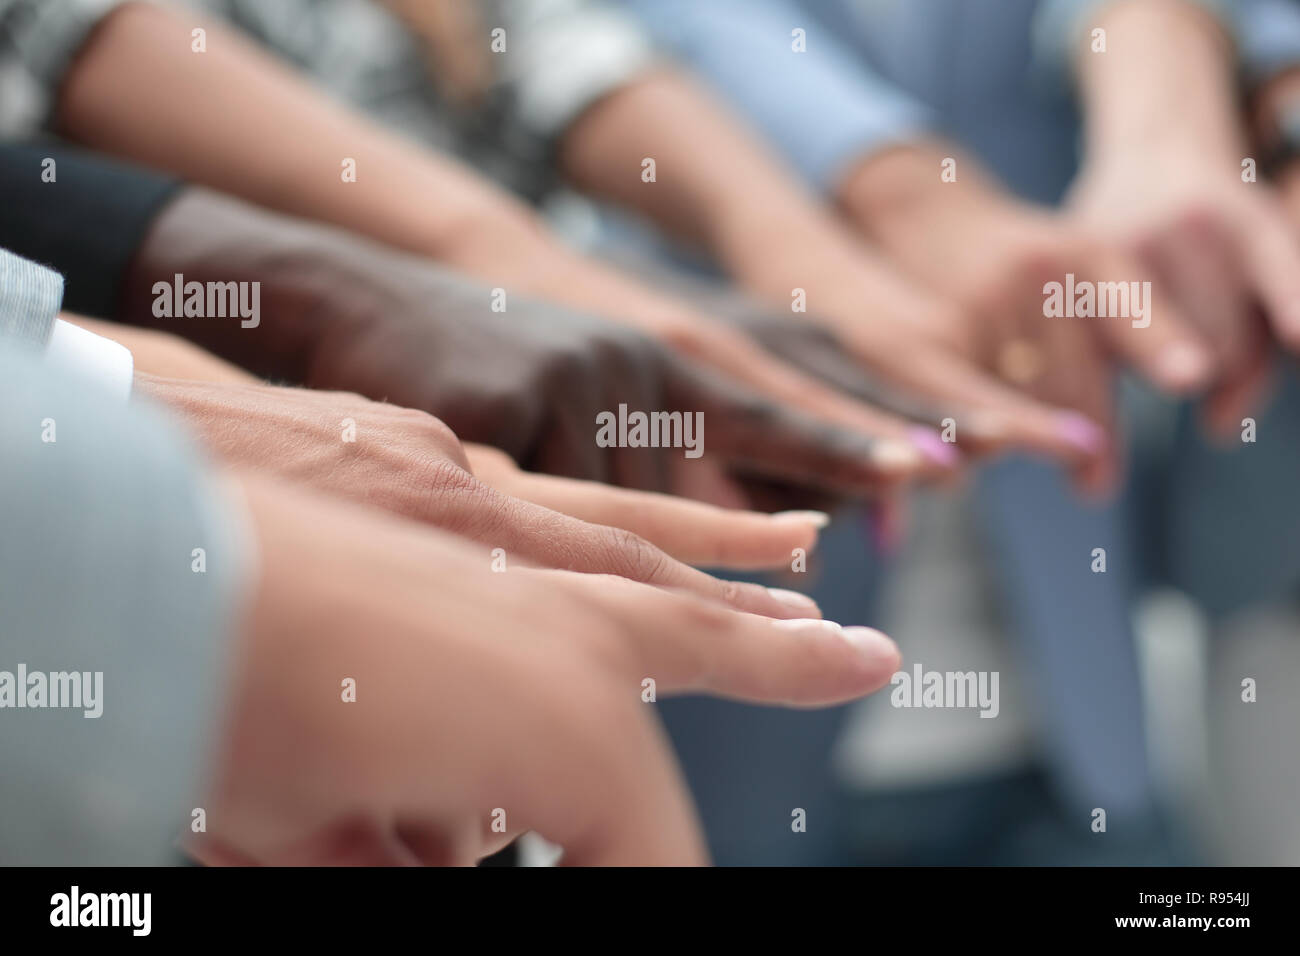 close-up of multi-racial hands - Stock Image